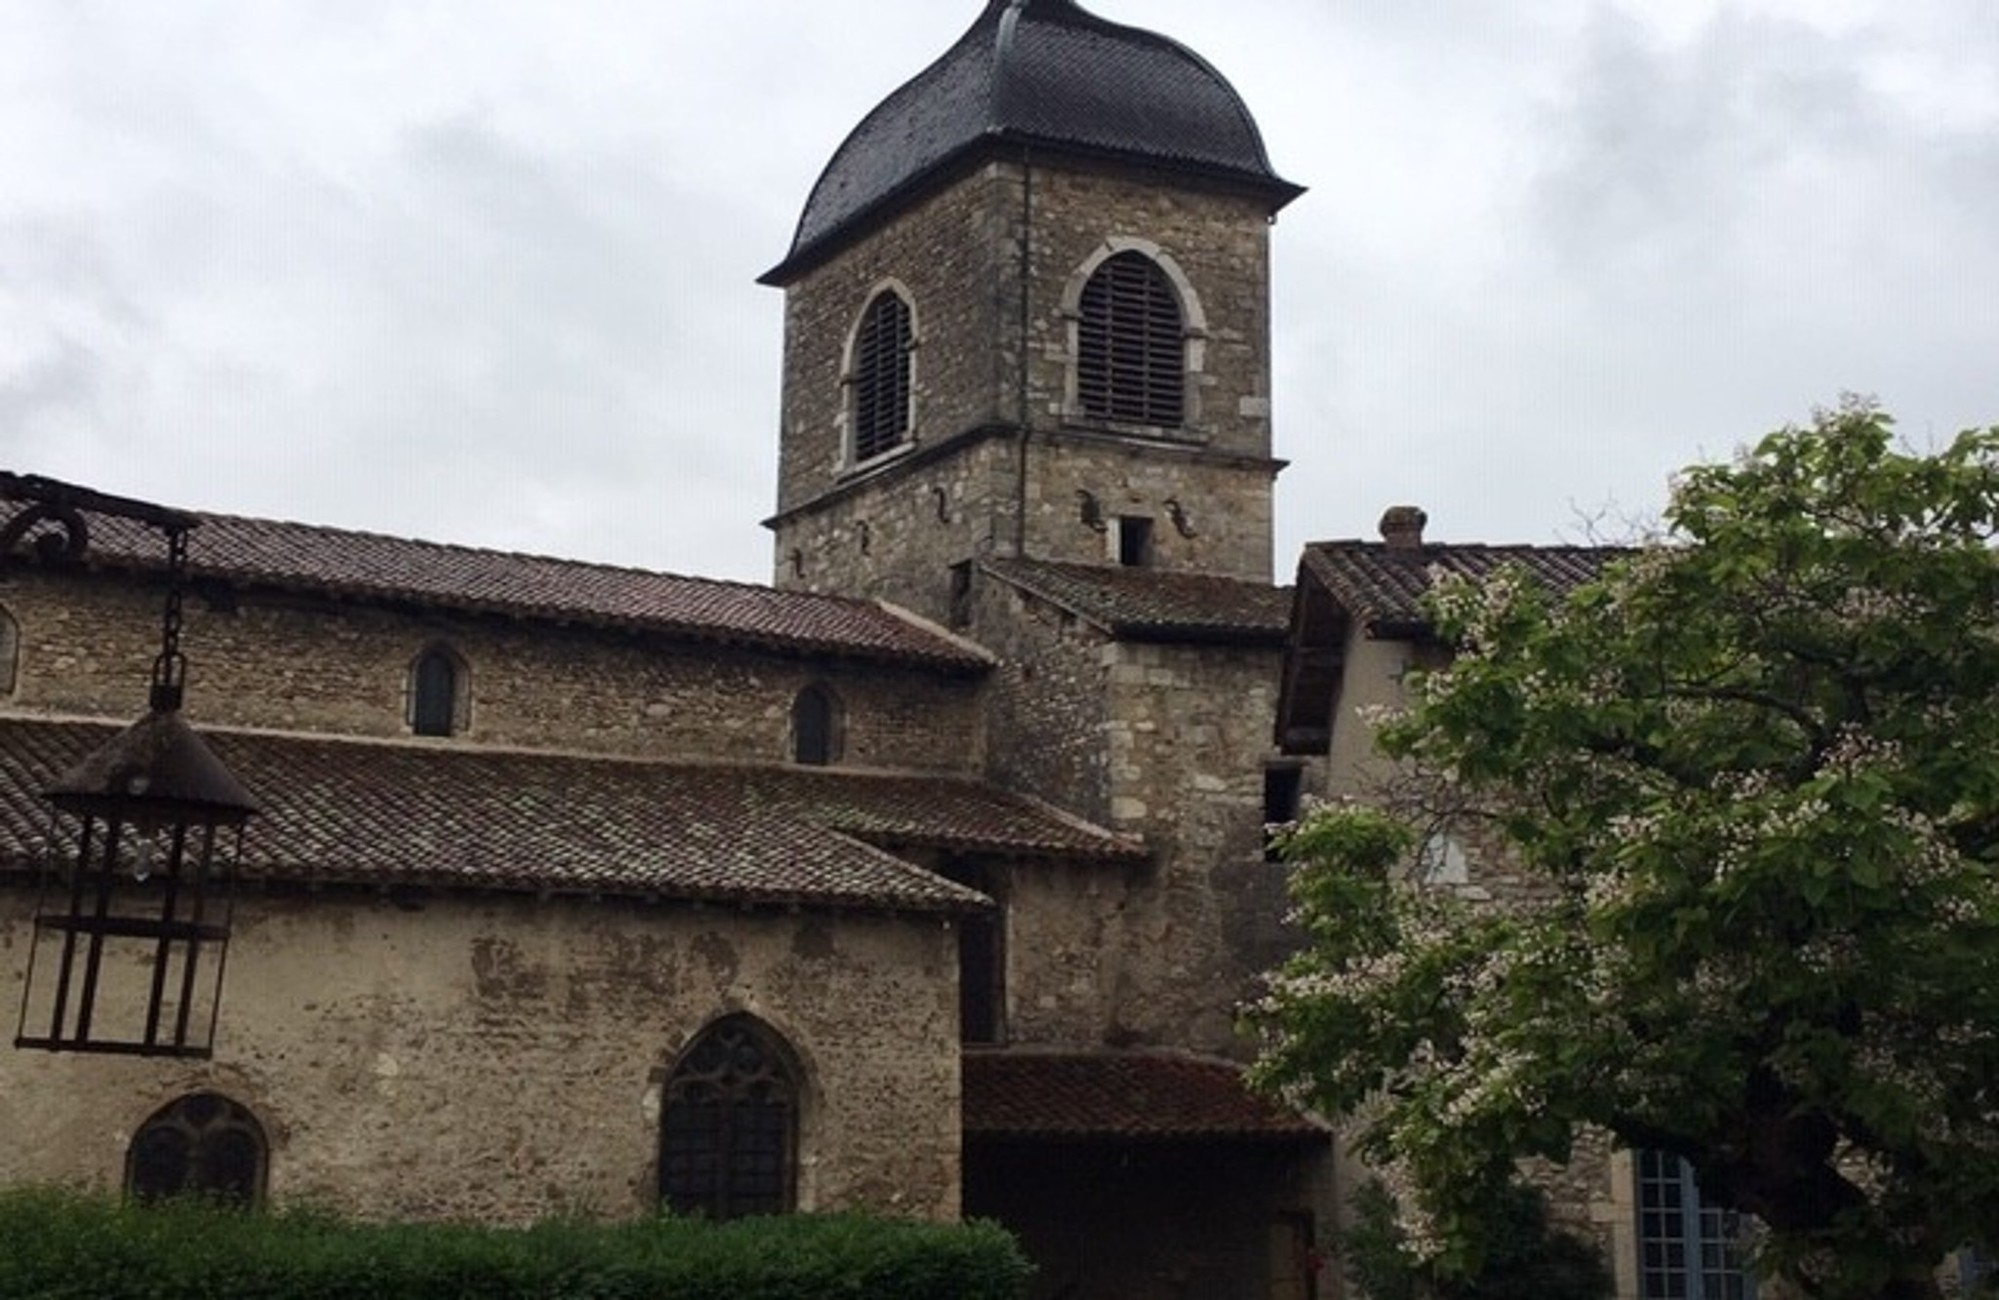 Vacation idea in France : the village of Meximieux, in the Ain